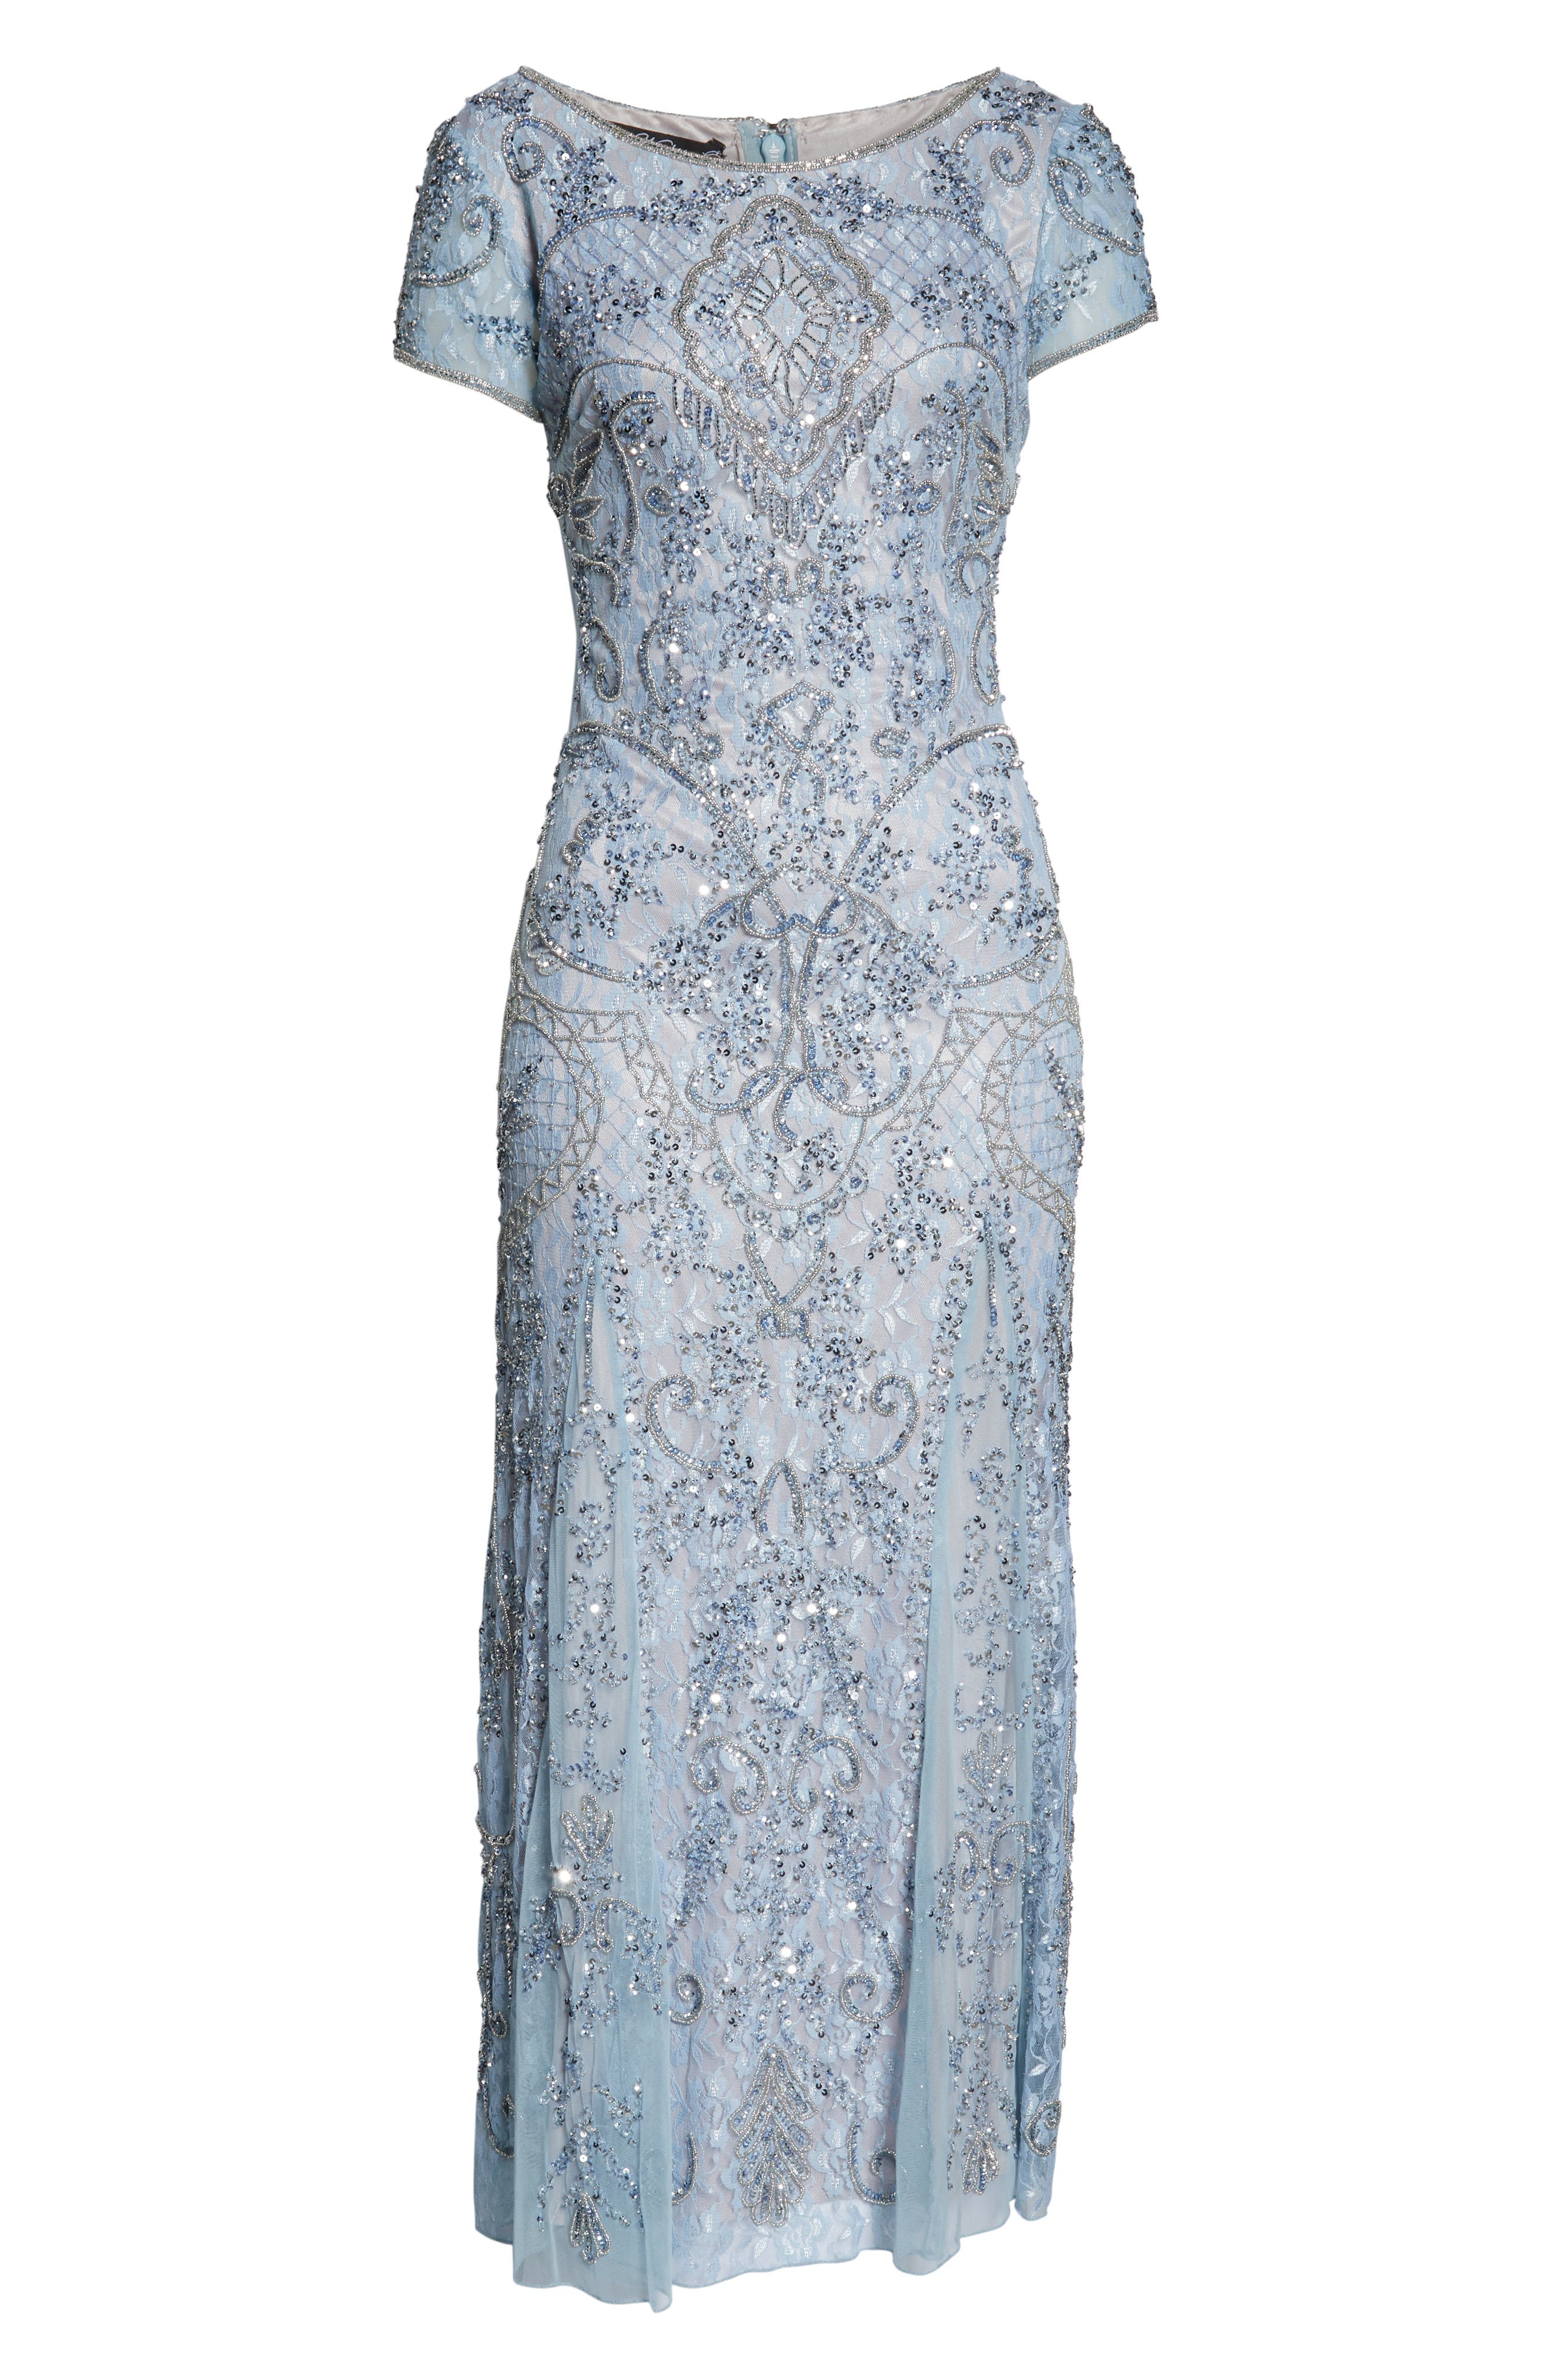 PISARRO NIGHTS,                             Embellished Lace Gown,                             Alternate thumbnail 7, color,                             450